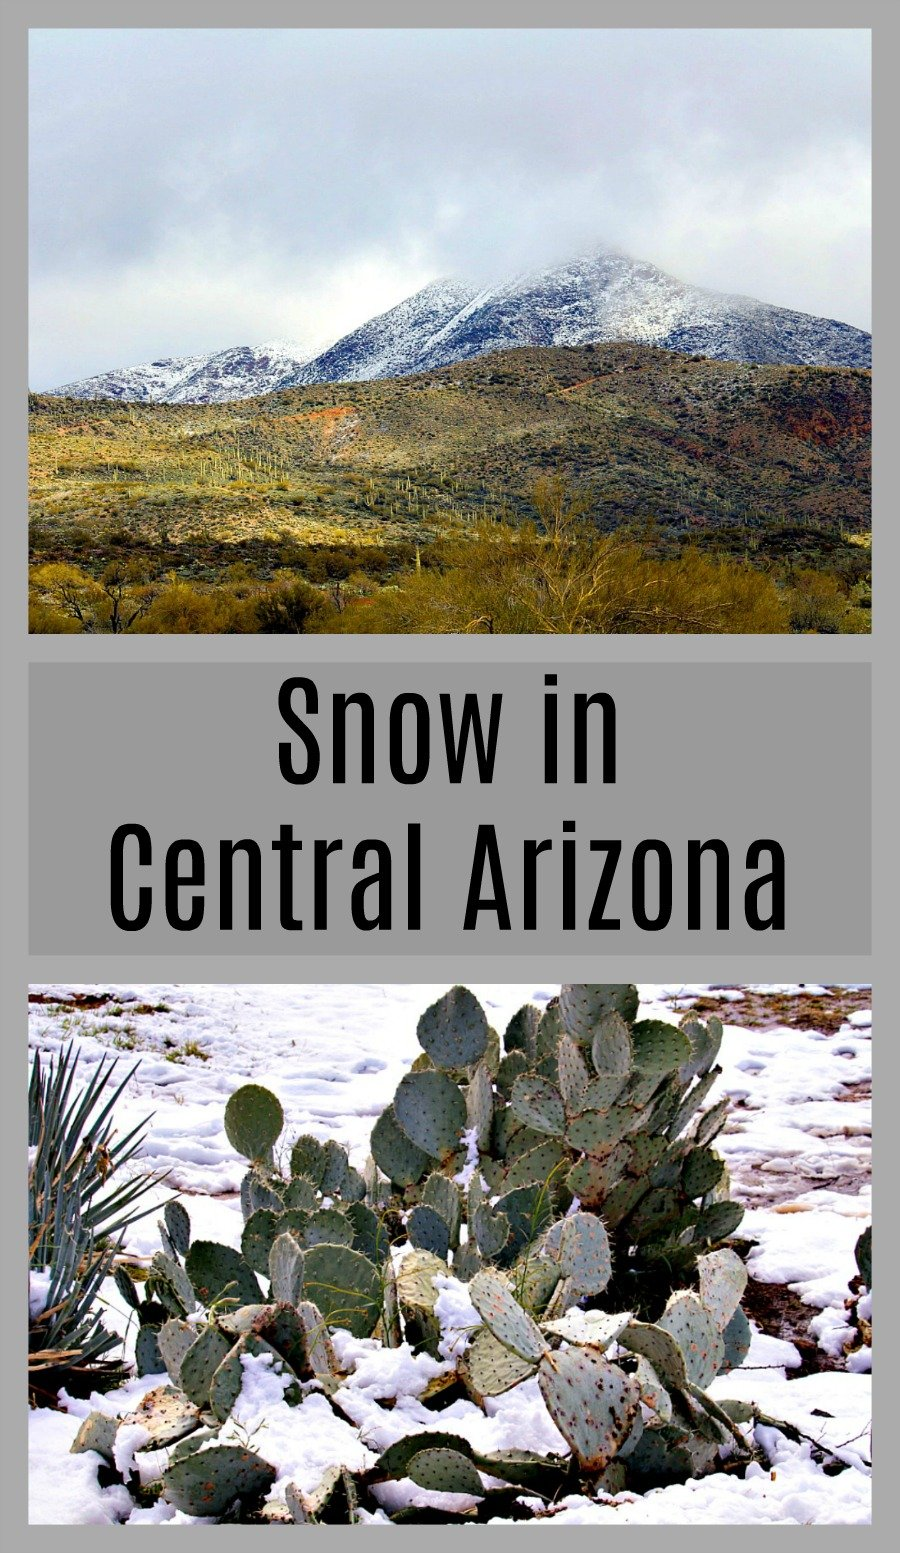 It is rare to see snow in Arizona except in the high country, so when we get snow in Central Arizona, we celebrate!